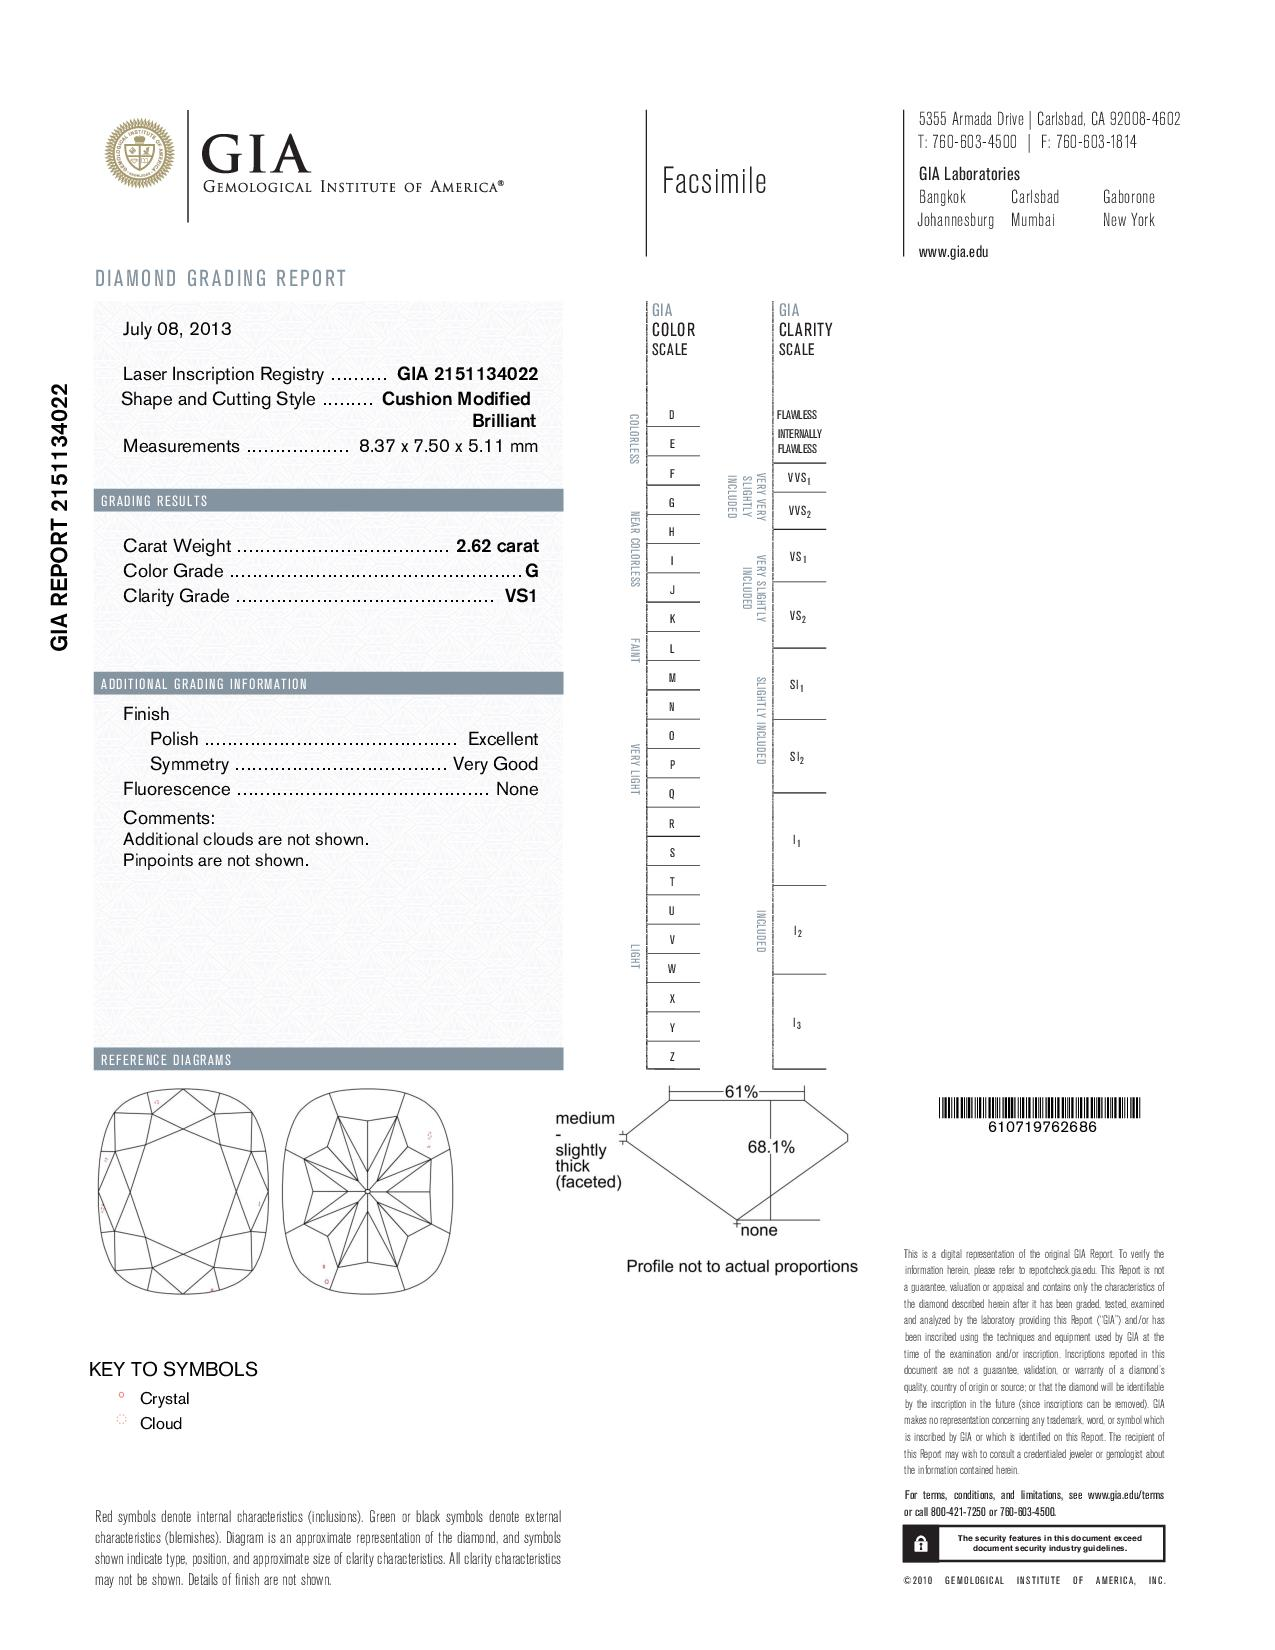 This is a 2.62 carat cushion shape, G color, VS1 clarity natural diamond accompanied by a GIA grading report.